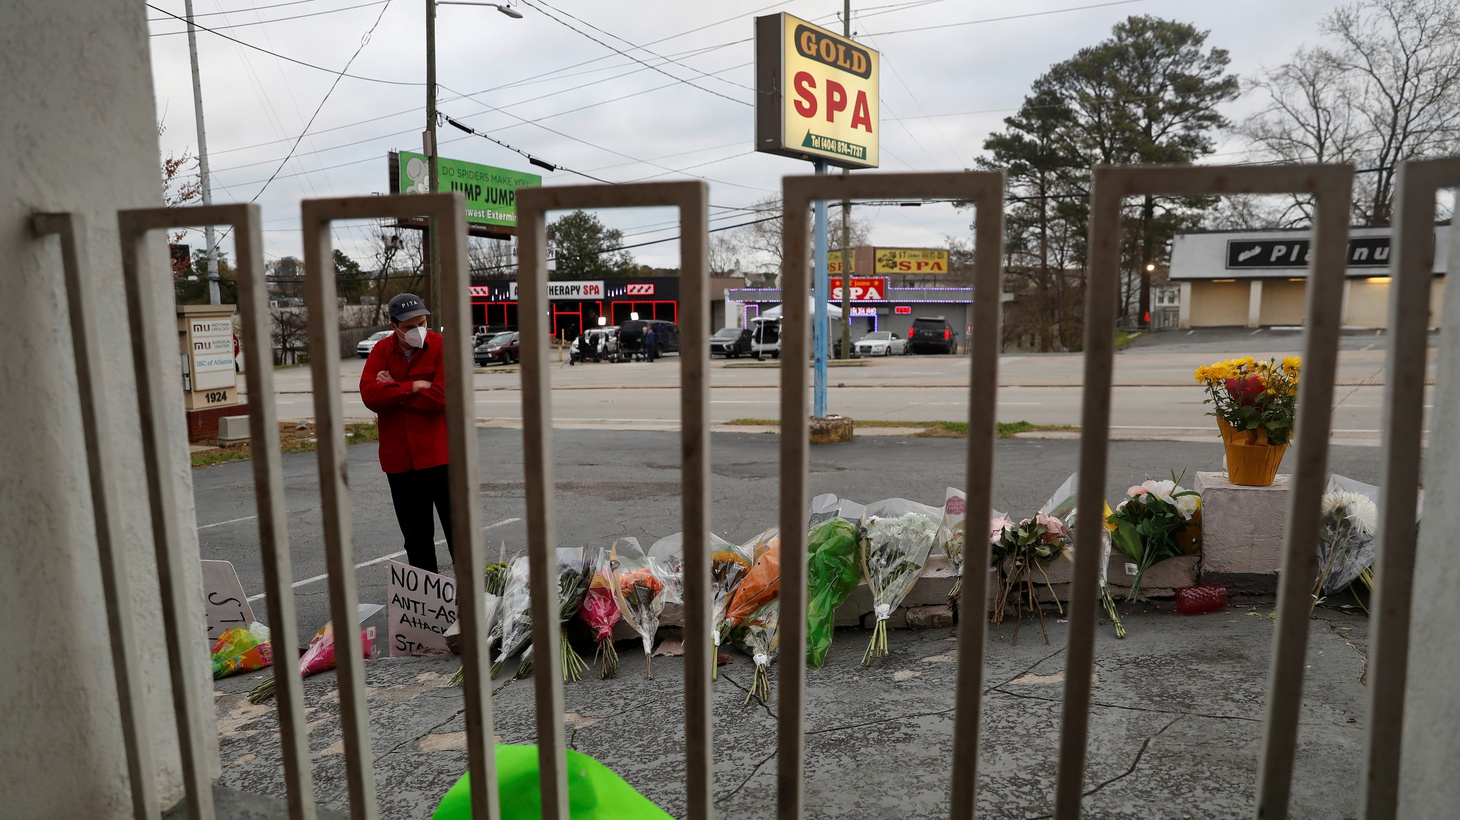 Sasha Hasanbegovic looks down after laying flowers at a makeshift memorial outside the Gold Spa following the deadly shootings in Atlanta, Georgia, U.S. March 19, 2021.